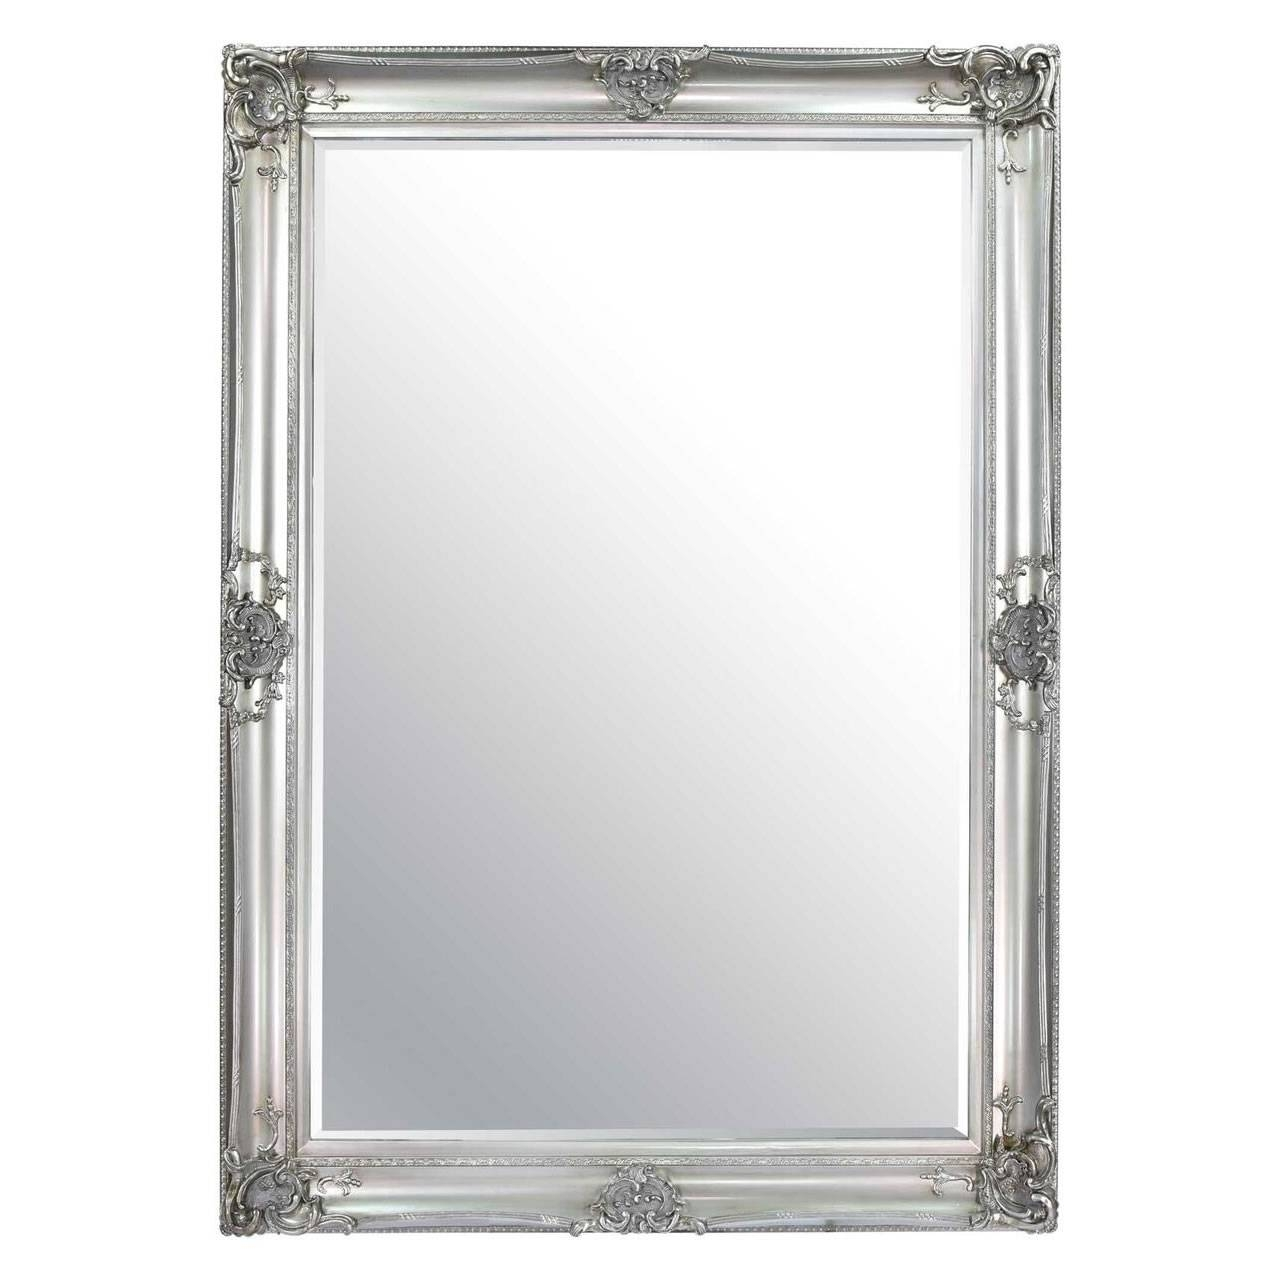 Ornate Framed Mirrors with regard to Silver Ornate Wall Mirrors (Image 17 of 25)